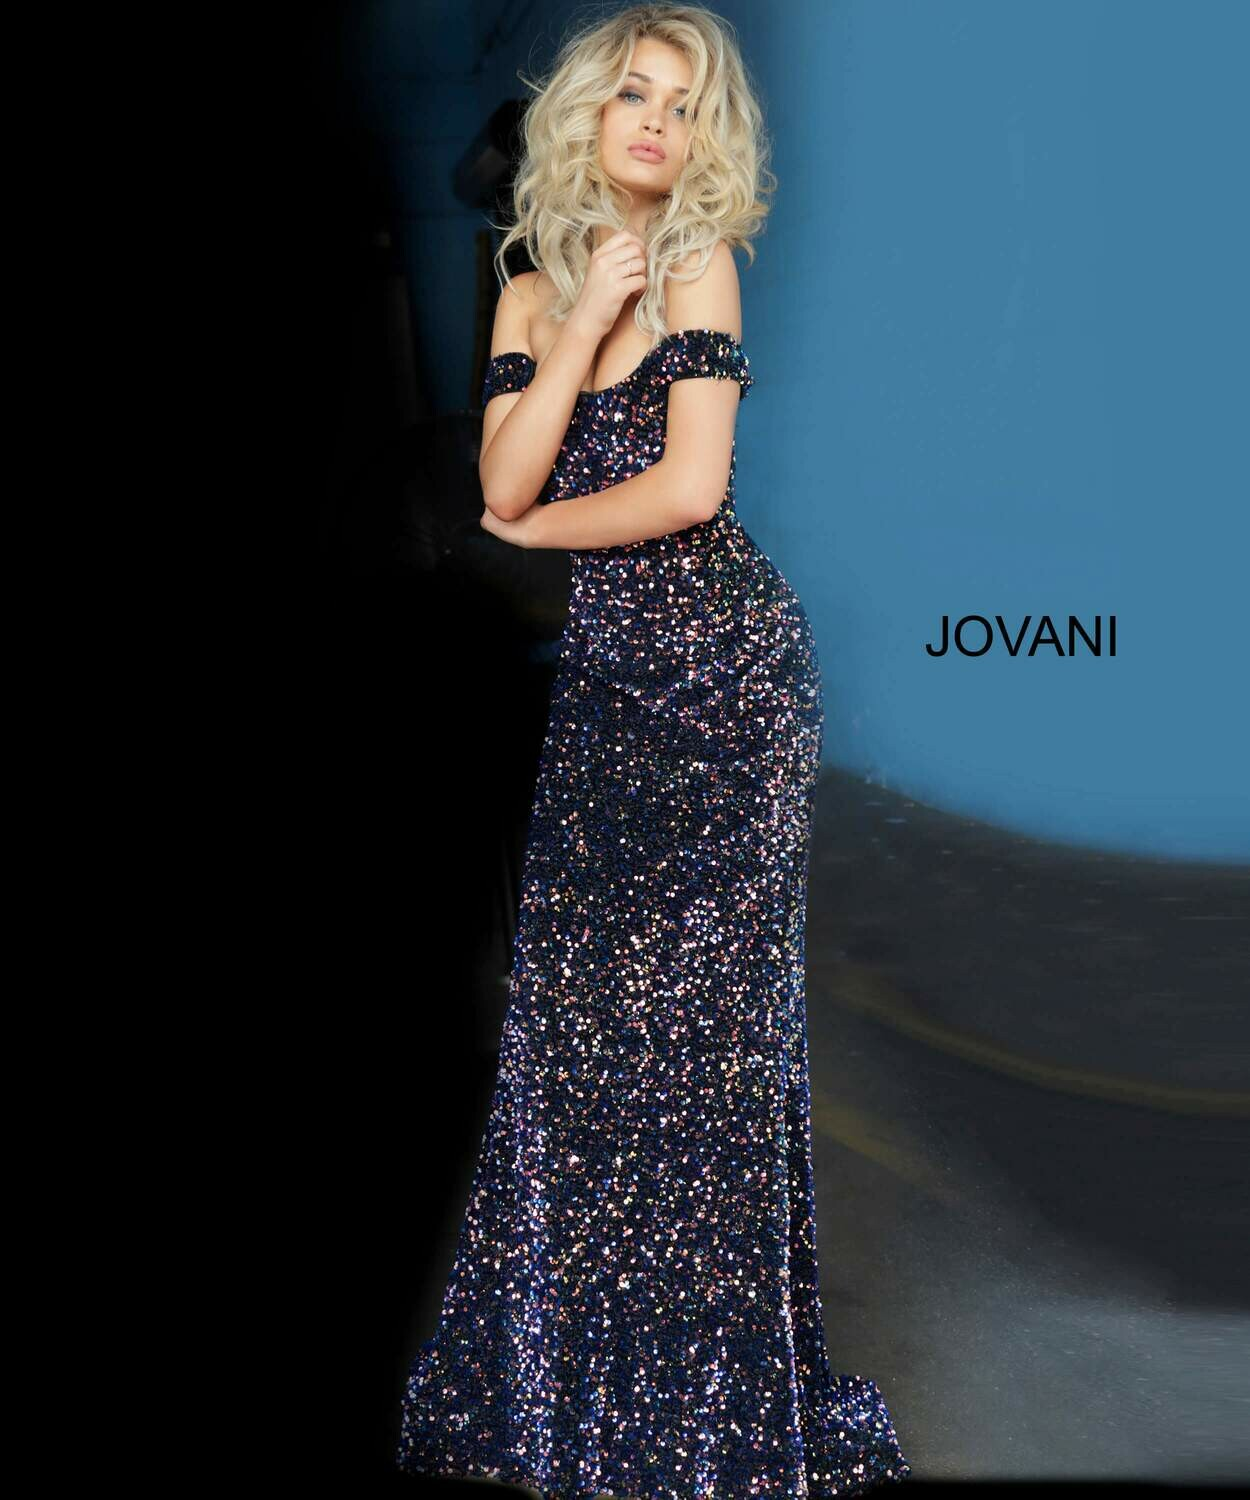 Jovani Off-The-Shoulder Sequin Gown in Multi-Colors